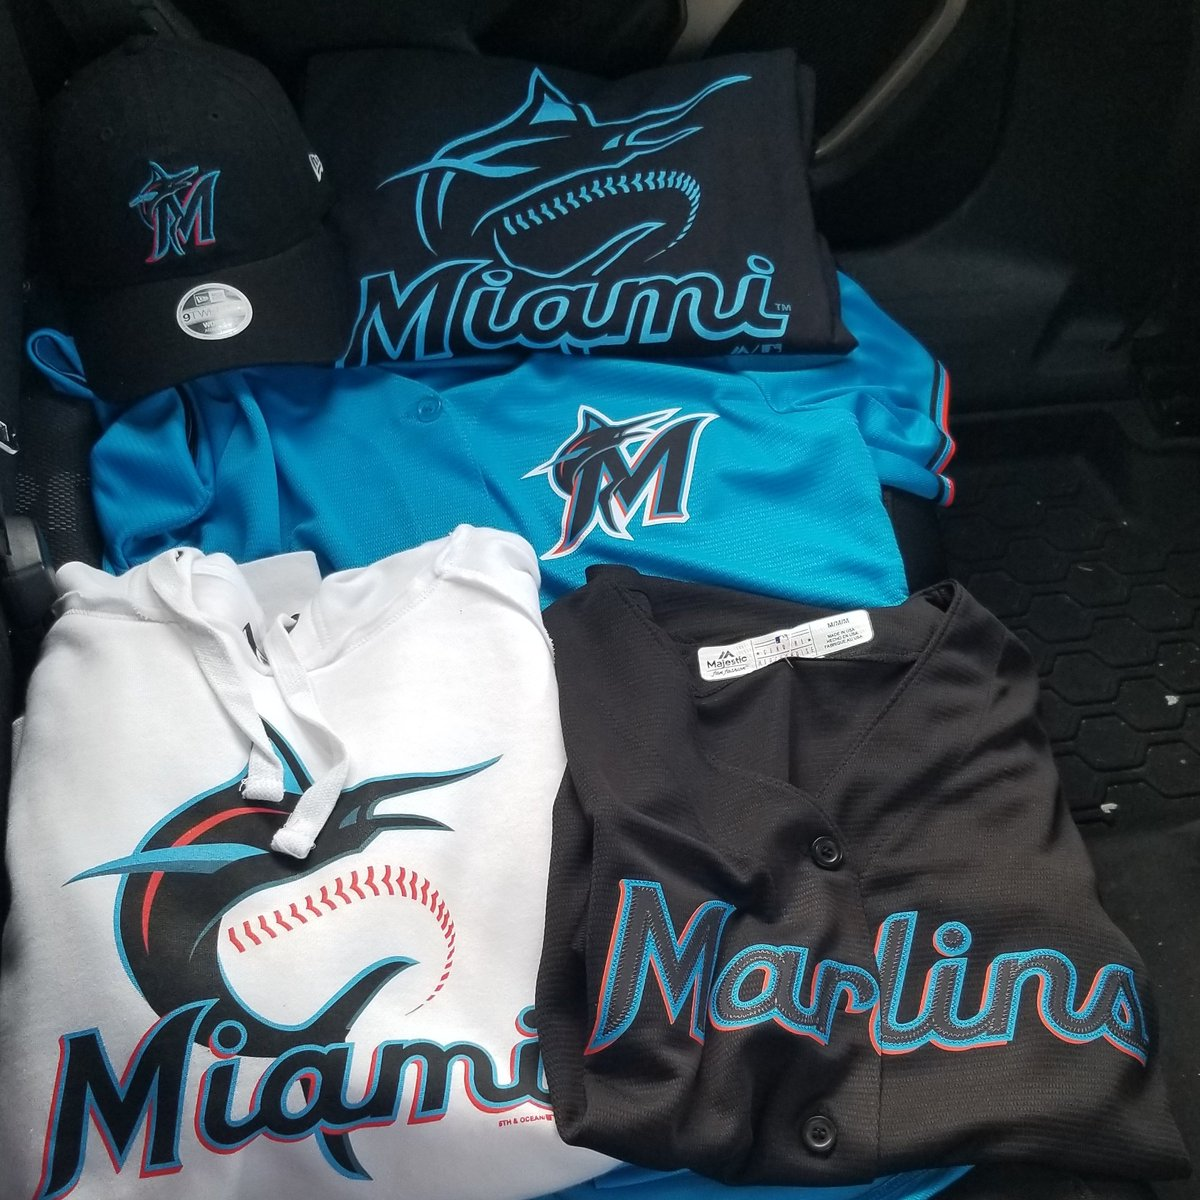 Opening Day where you at? #OurColores @Marlins